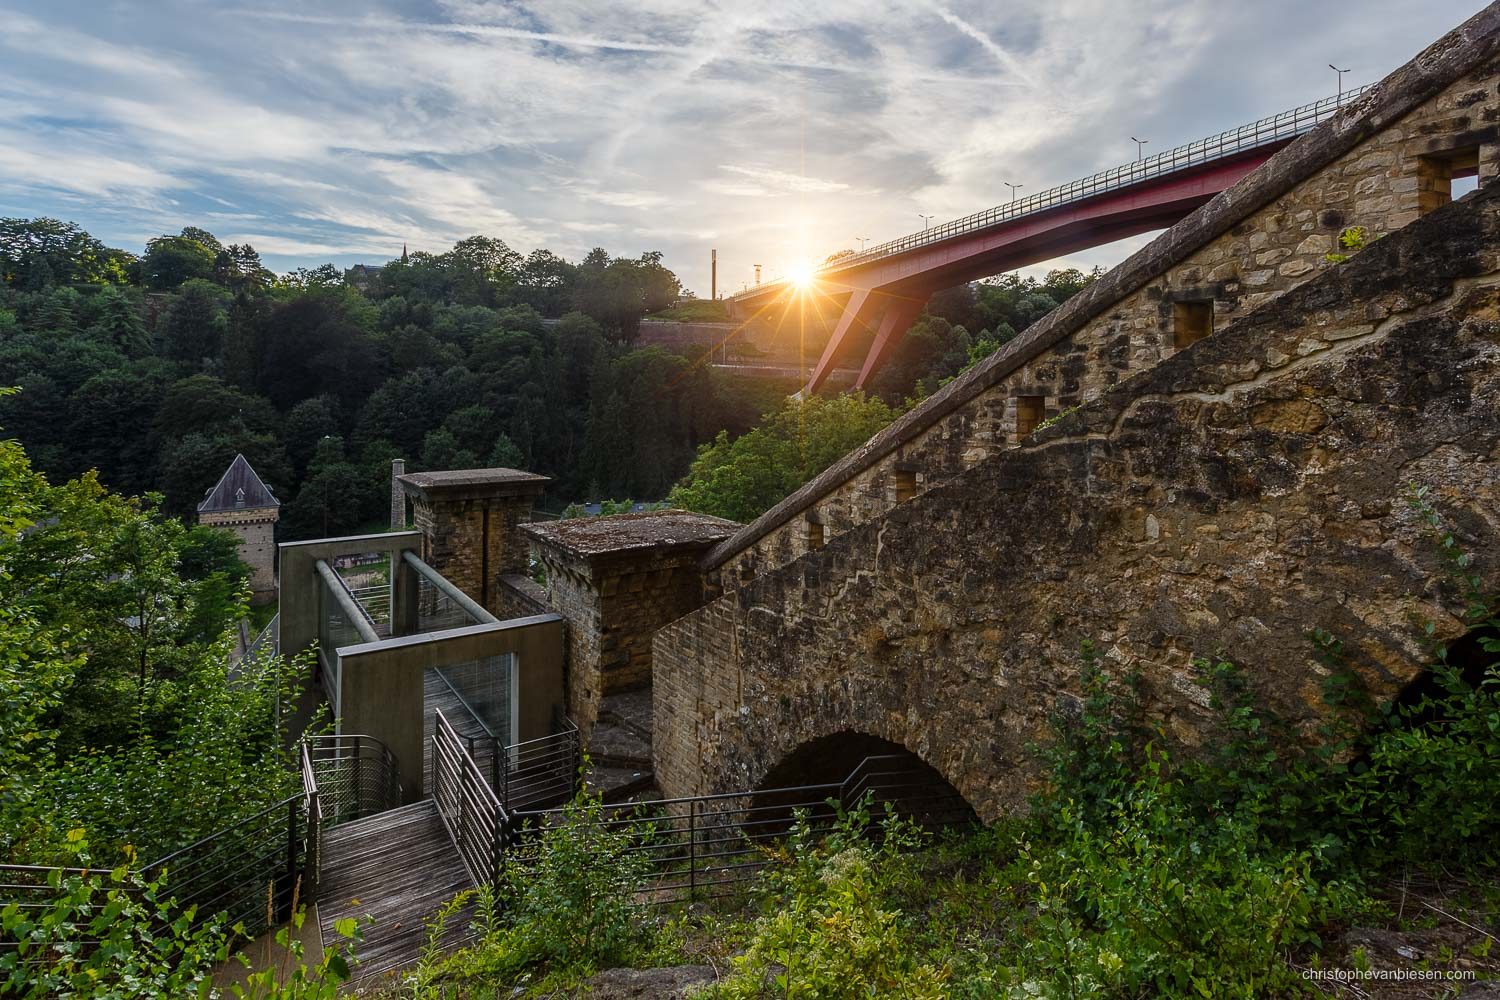 Luxembourg City - The Grand Duchess Charlotte Bridge seen from the ancient battlements over Luxembourg's Pfaffenthal - Along the Battlements